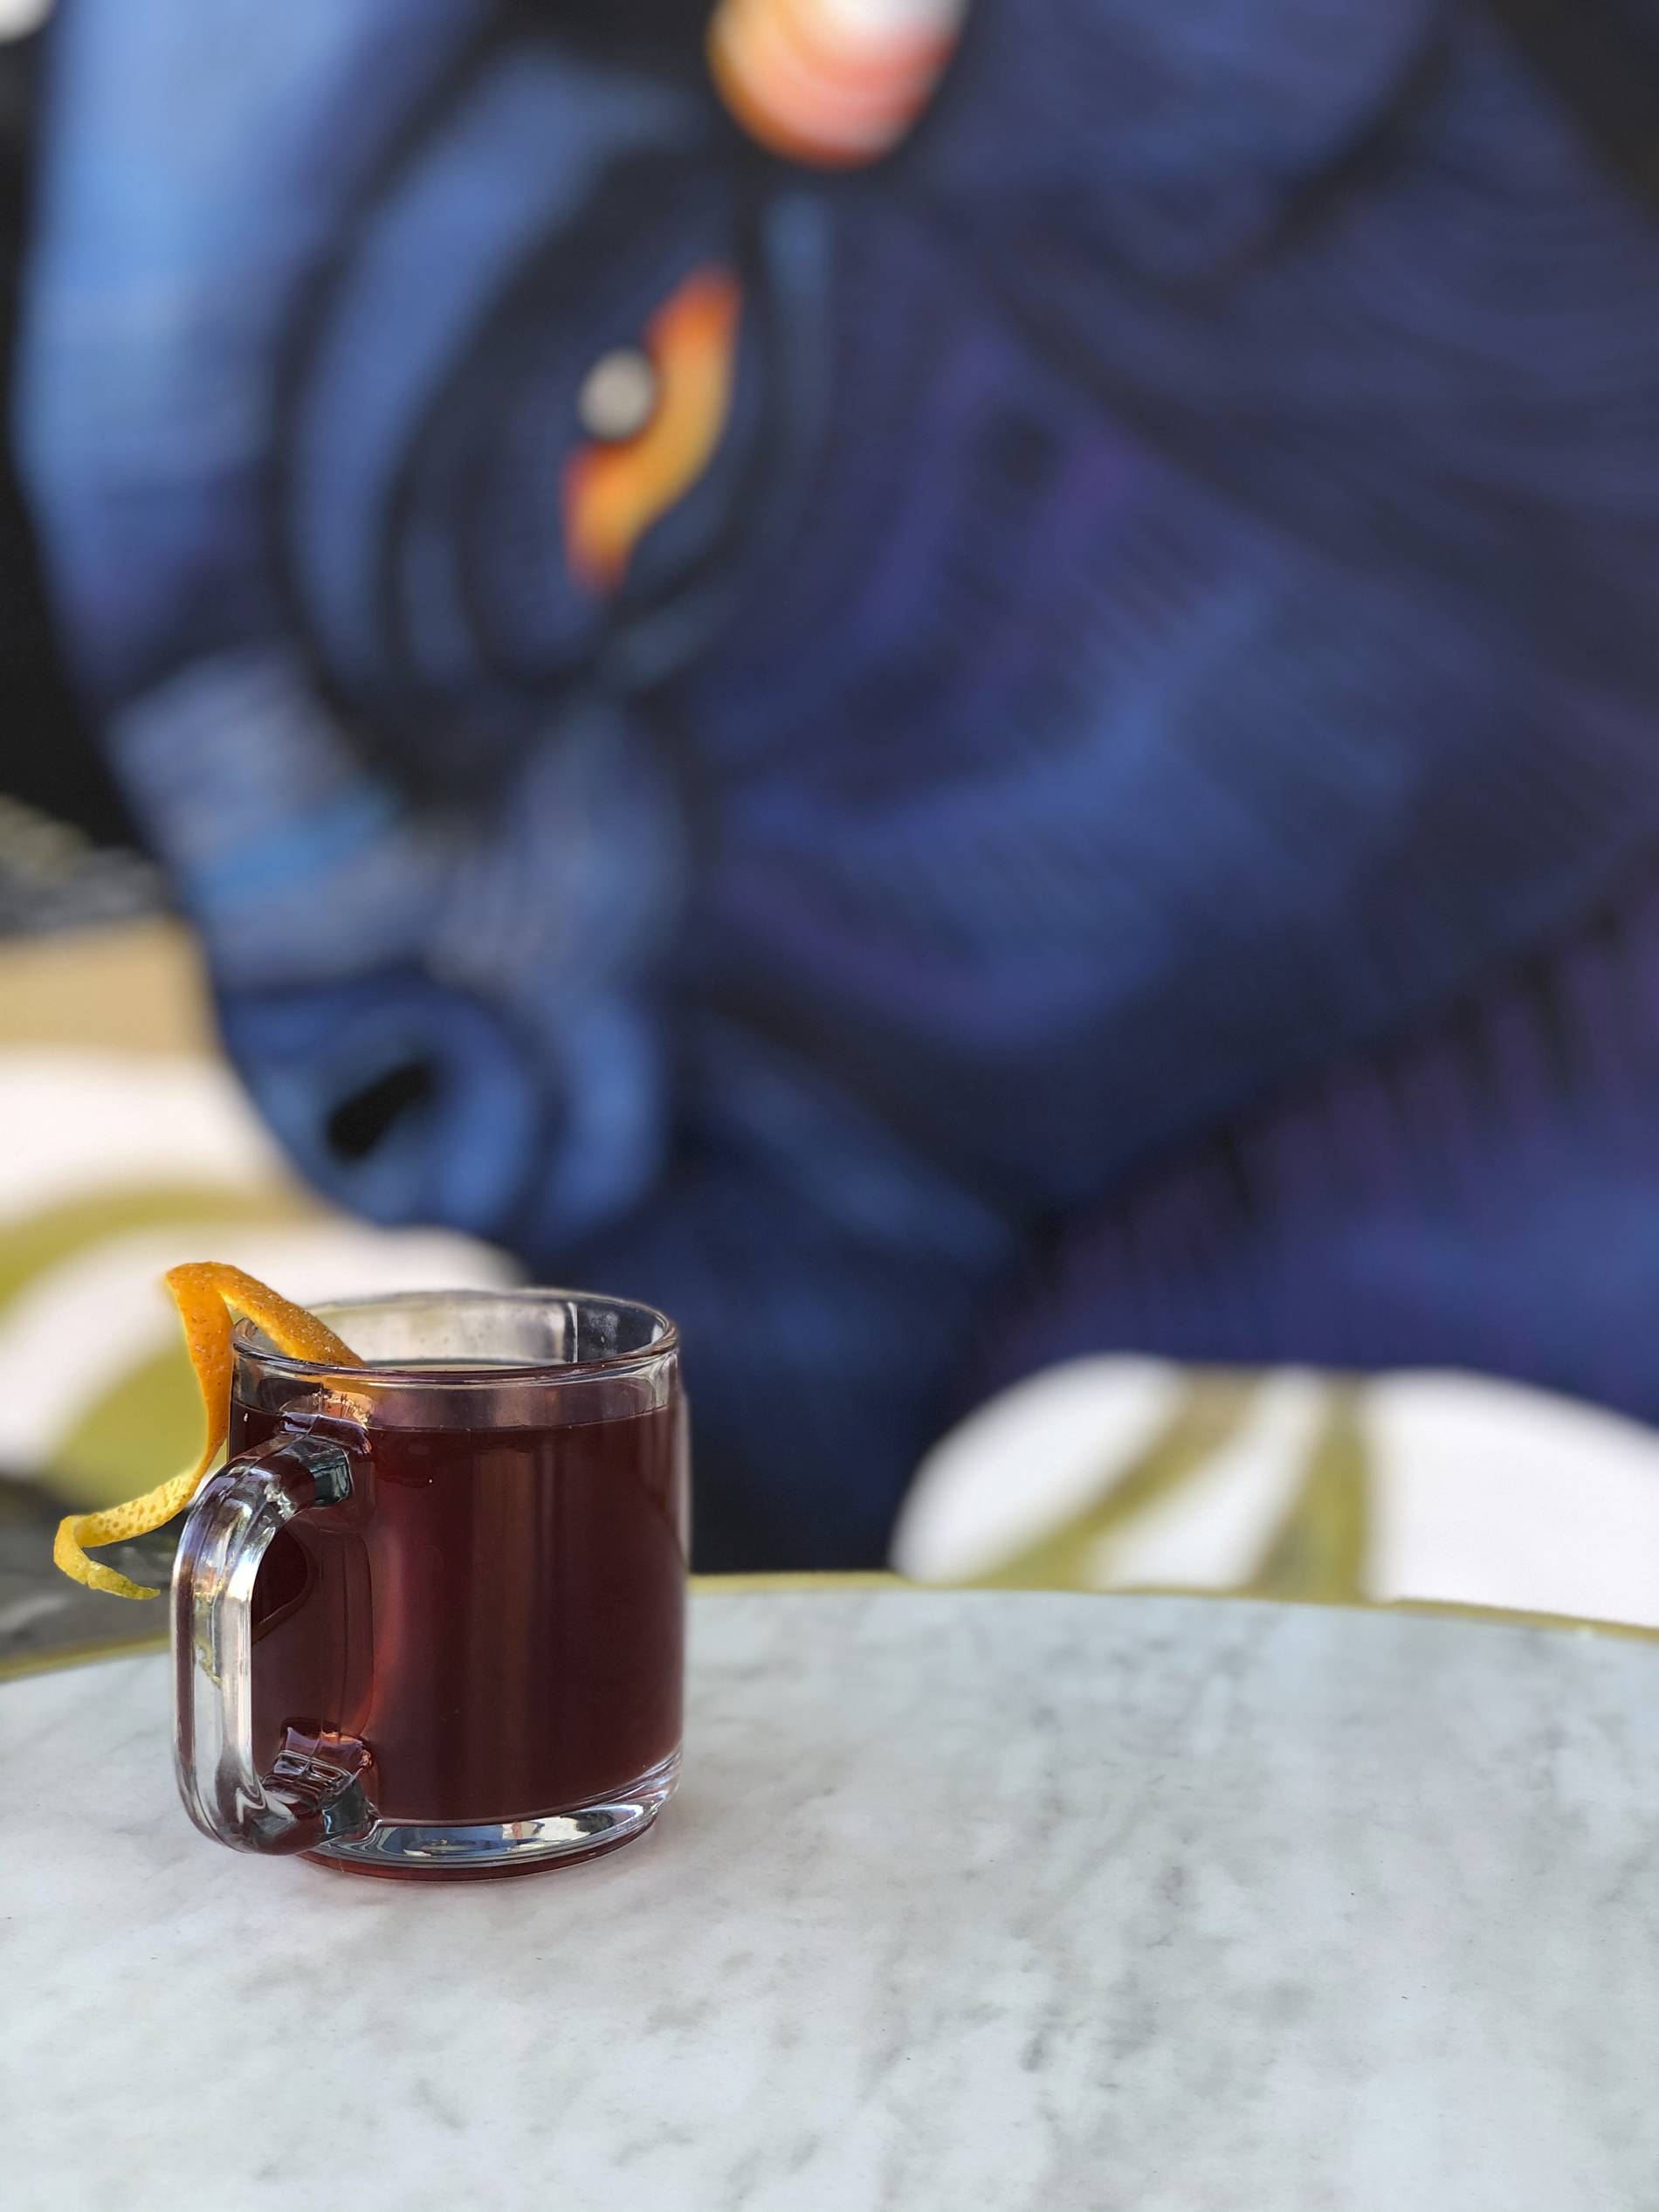 The_Violet_Hour_Hand_Warmer_cocktail_courtesy_Abe_Vucekovich.jpg